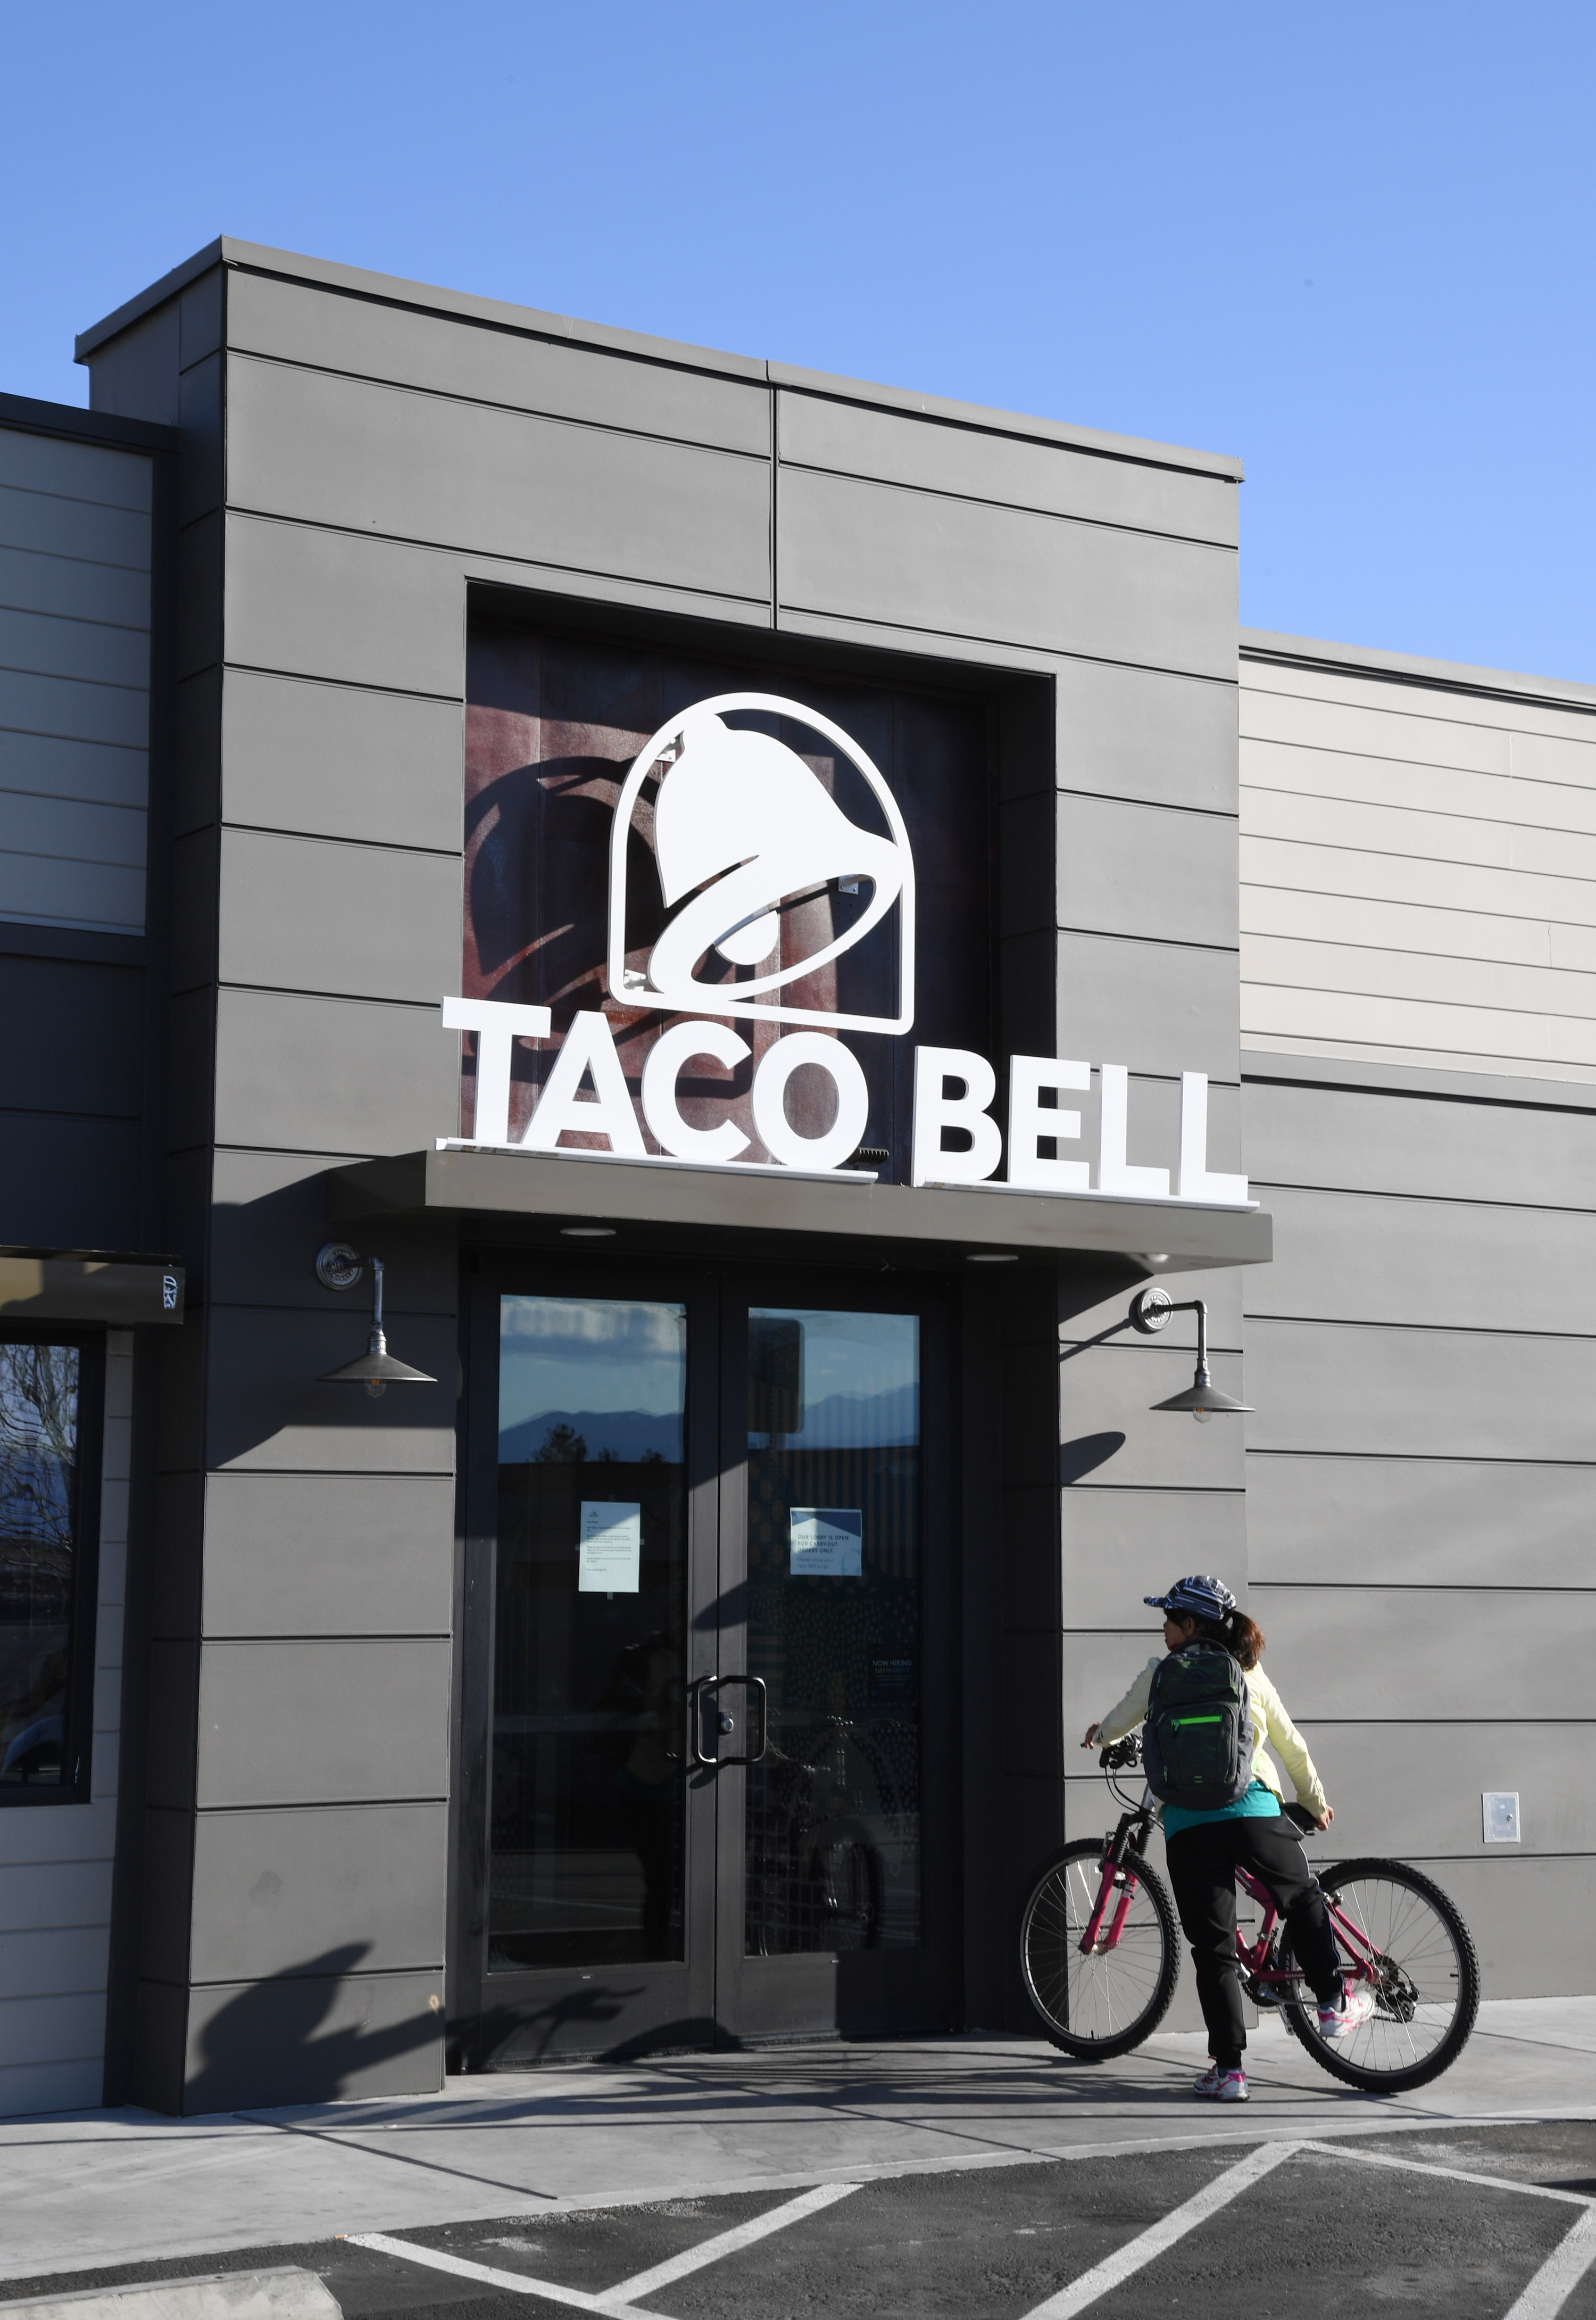 A Taco Bell storefront